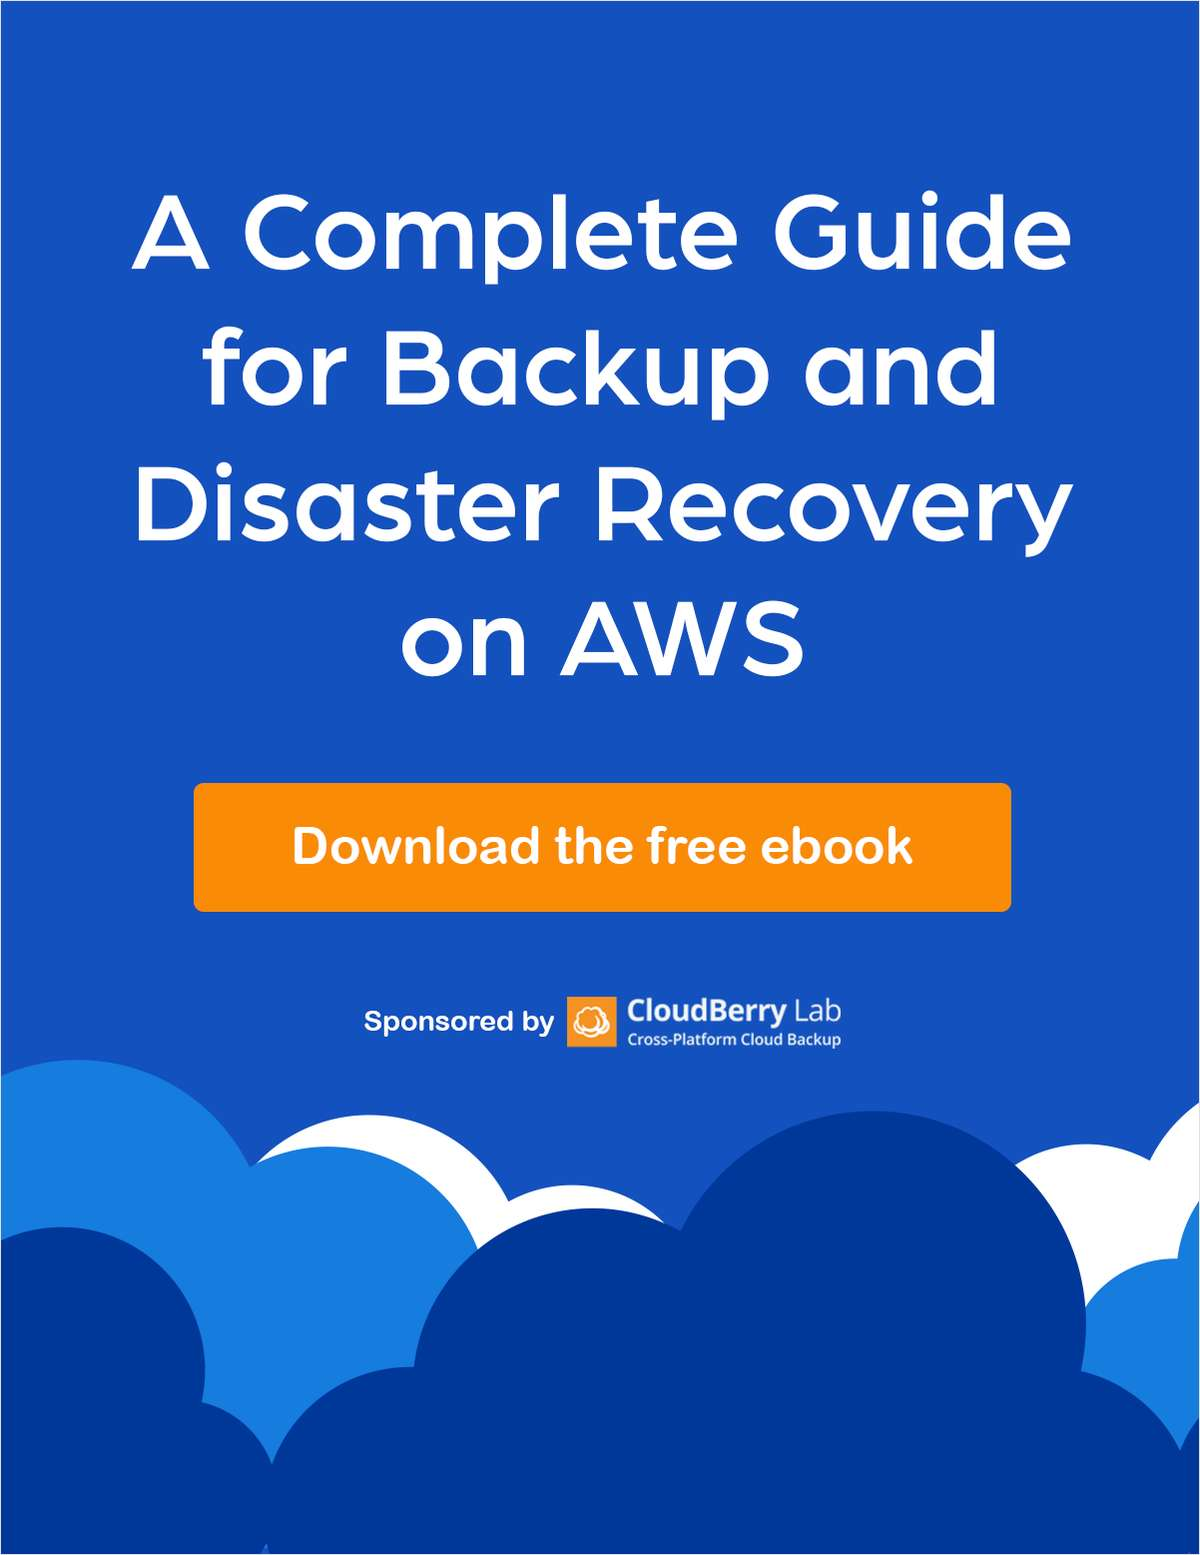 A Complete Guide for Backup and Disaster Recovery on AWS